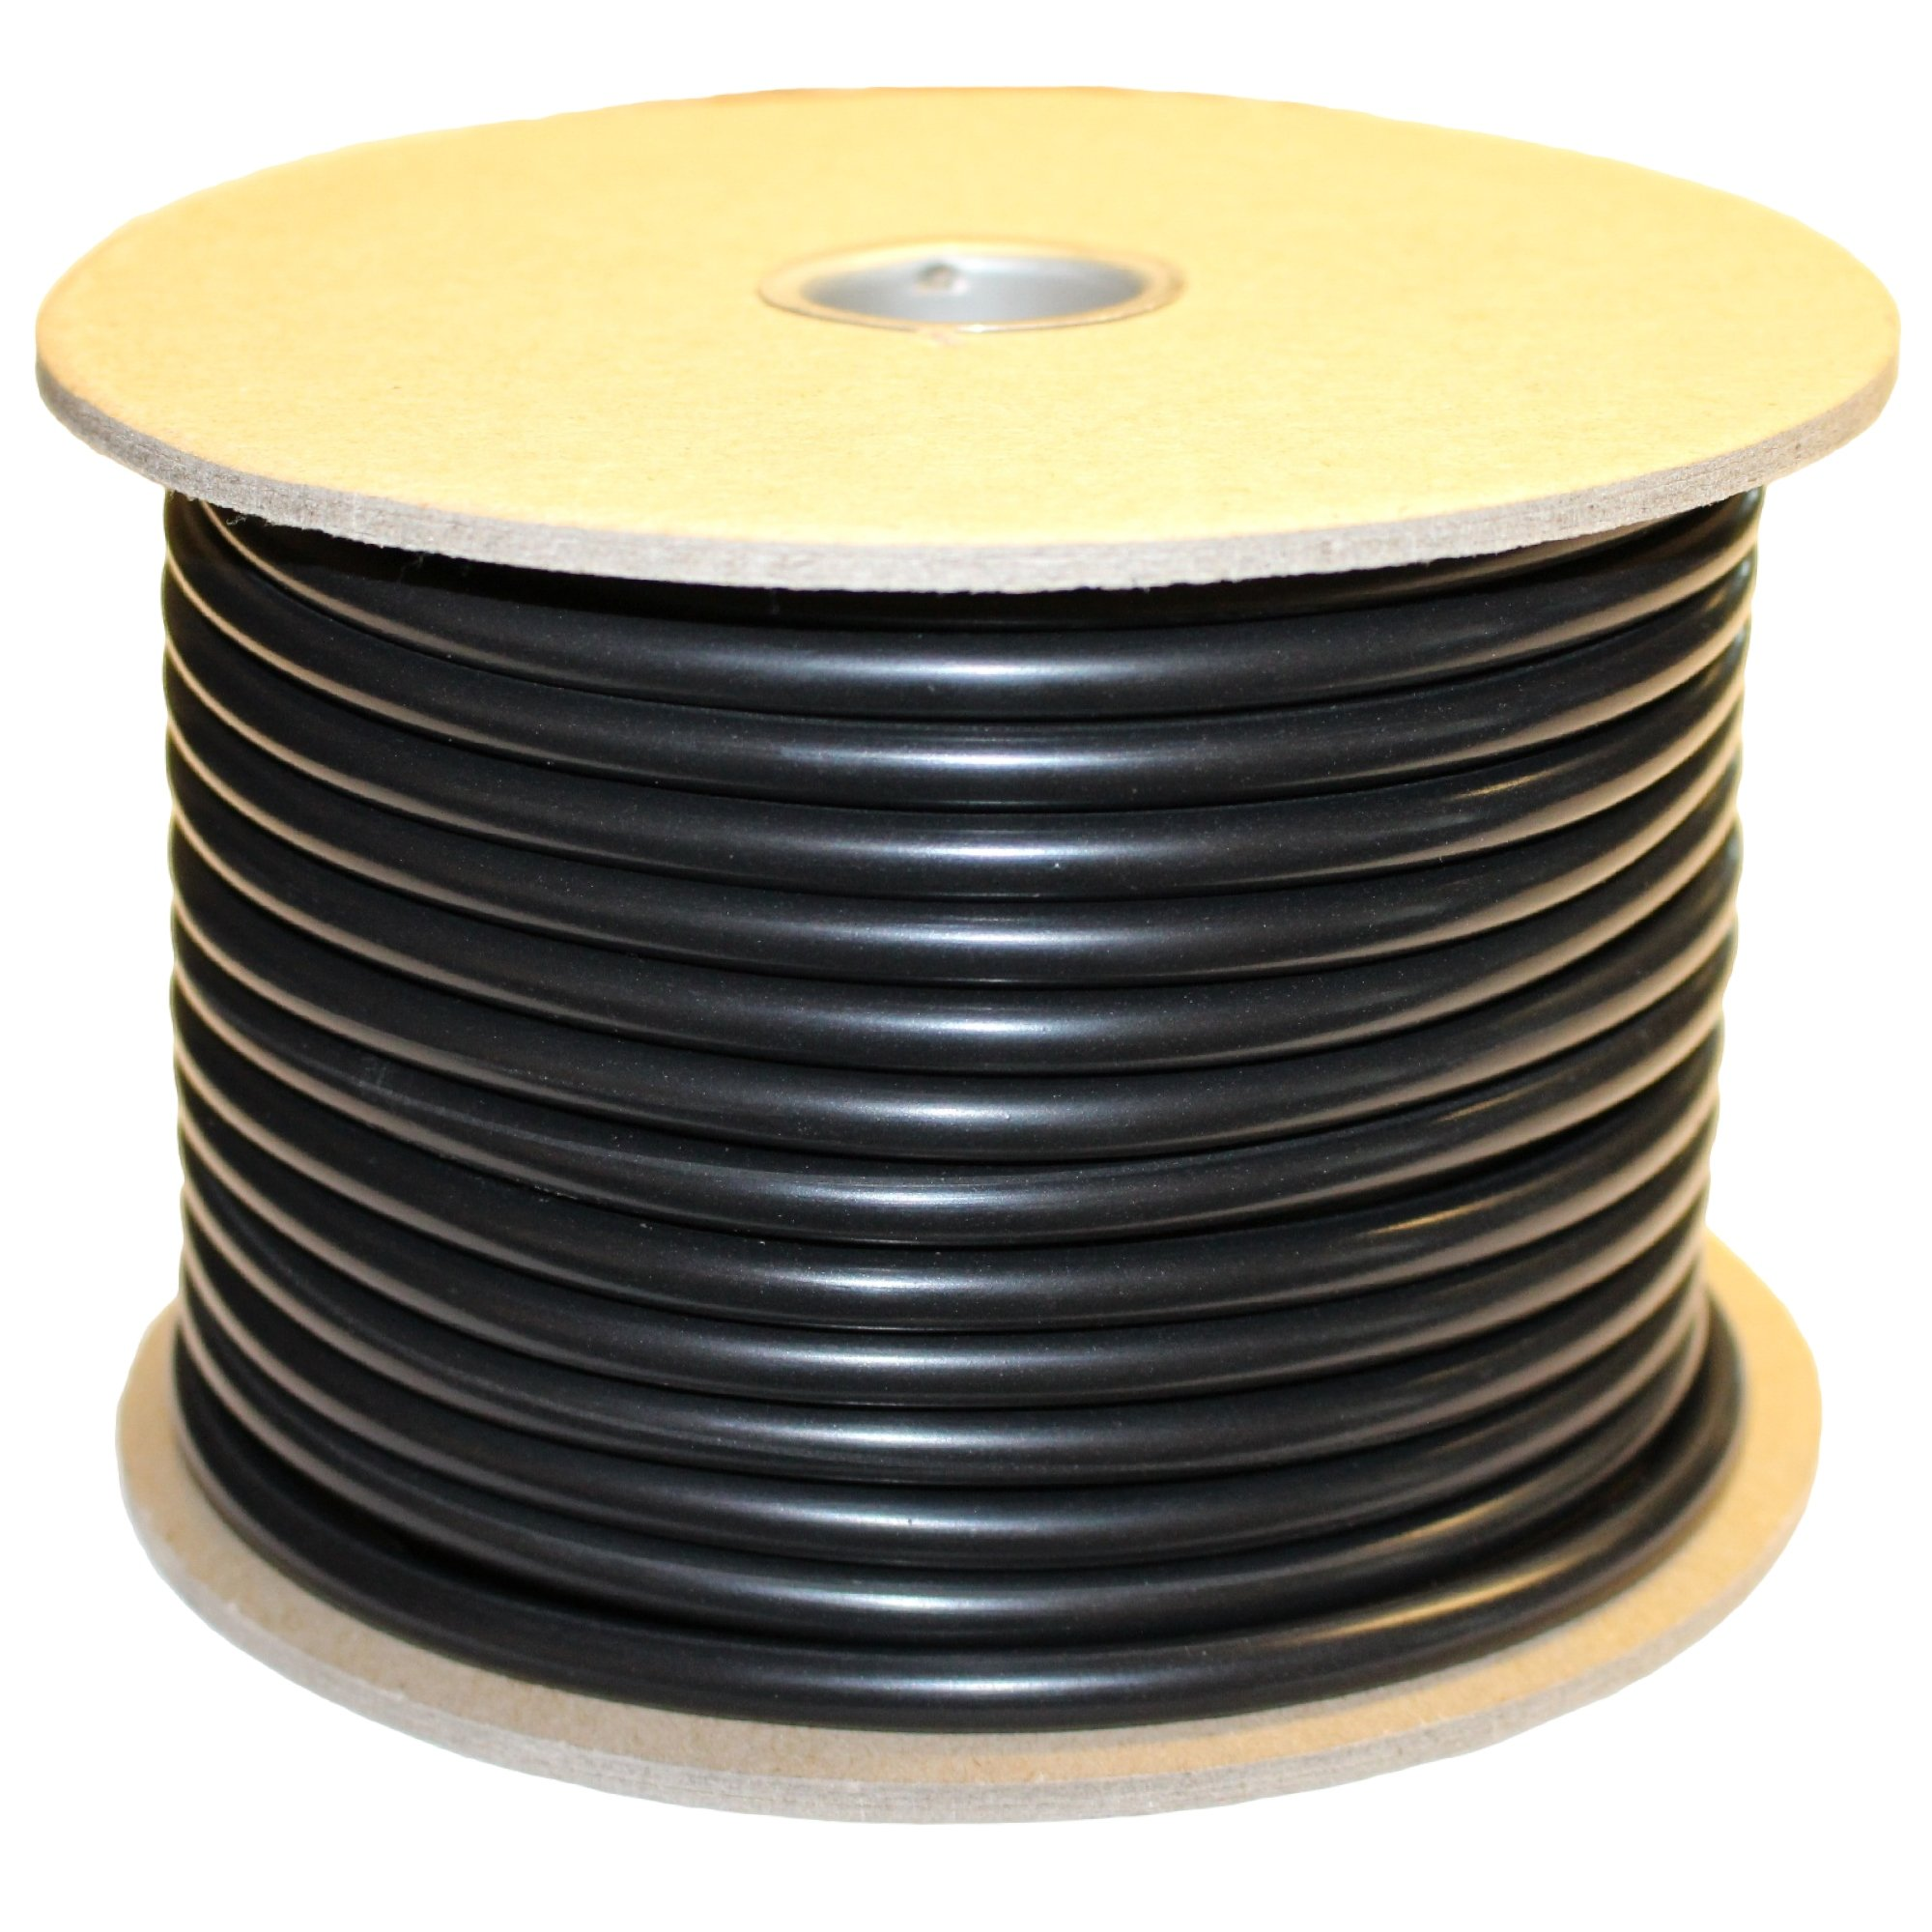 .750'' (3/4'') Buna-N O-Ring Cord Stock, 70A Durometer, 0.750'' Thickness, 100' Spool, Black